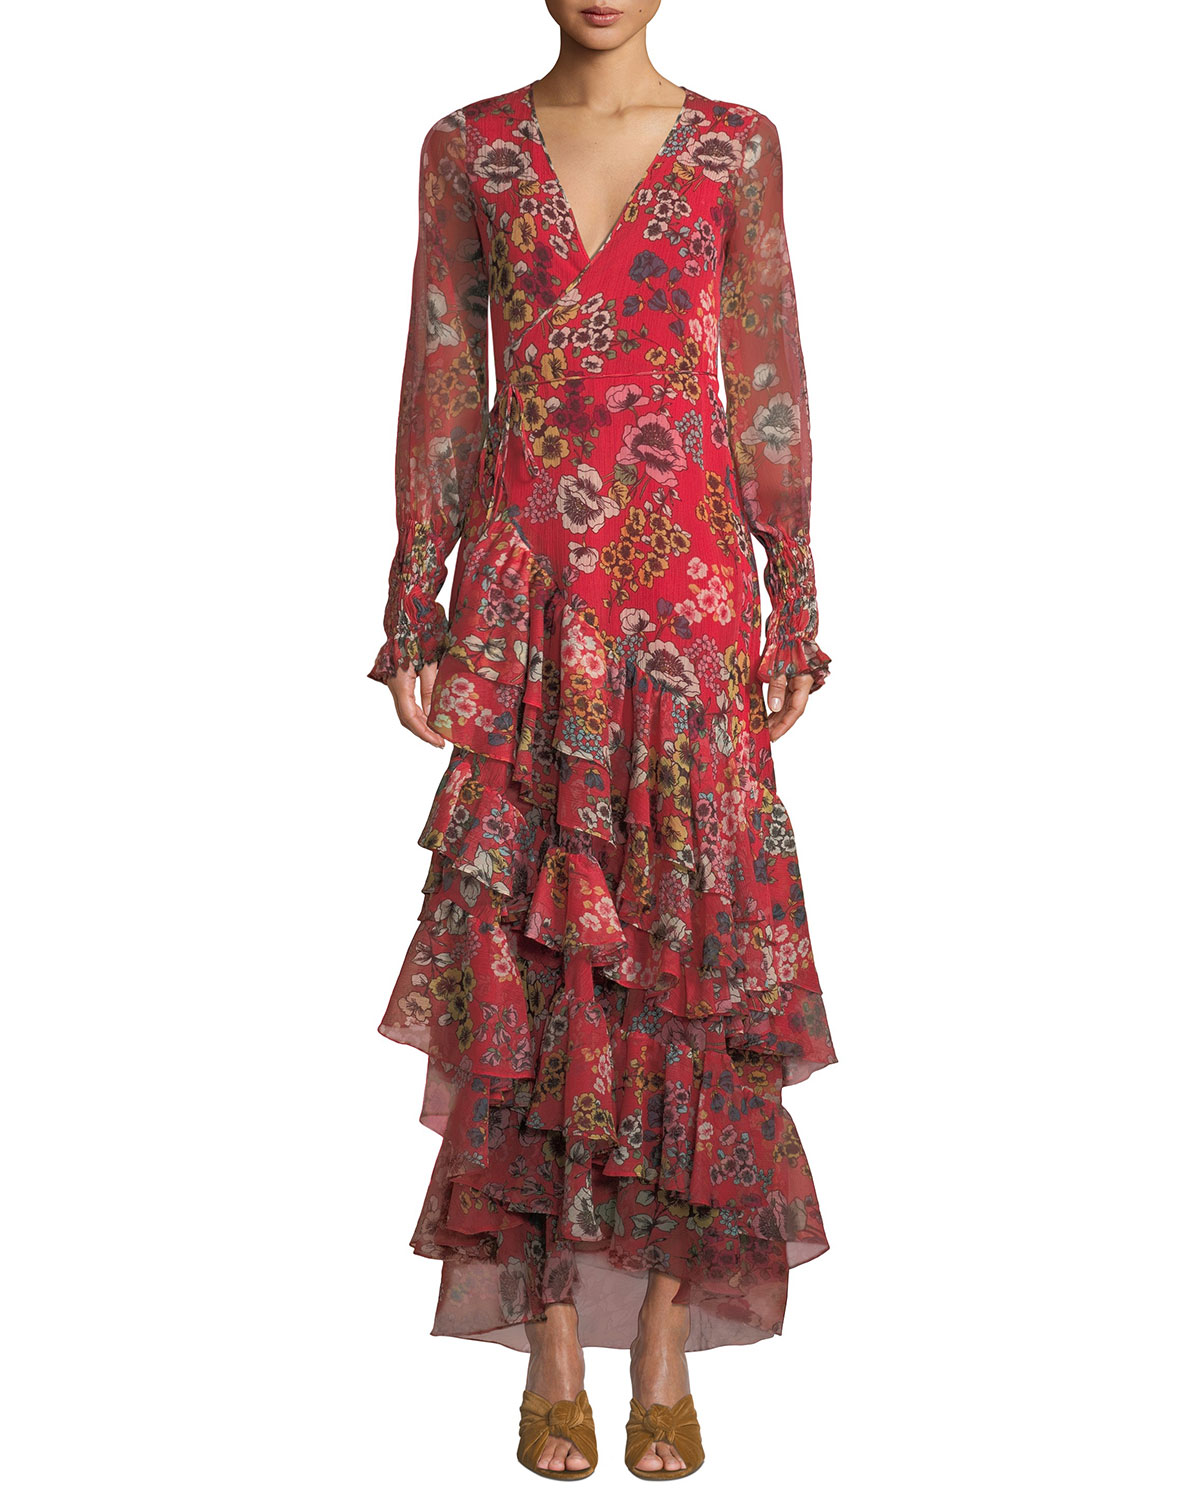 Solace Tiered Floral Wrap Flounce Dress in Red Pattern